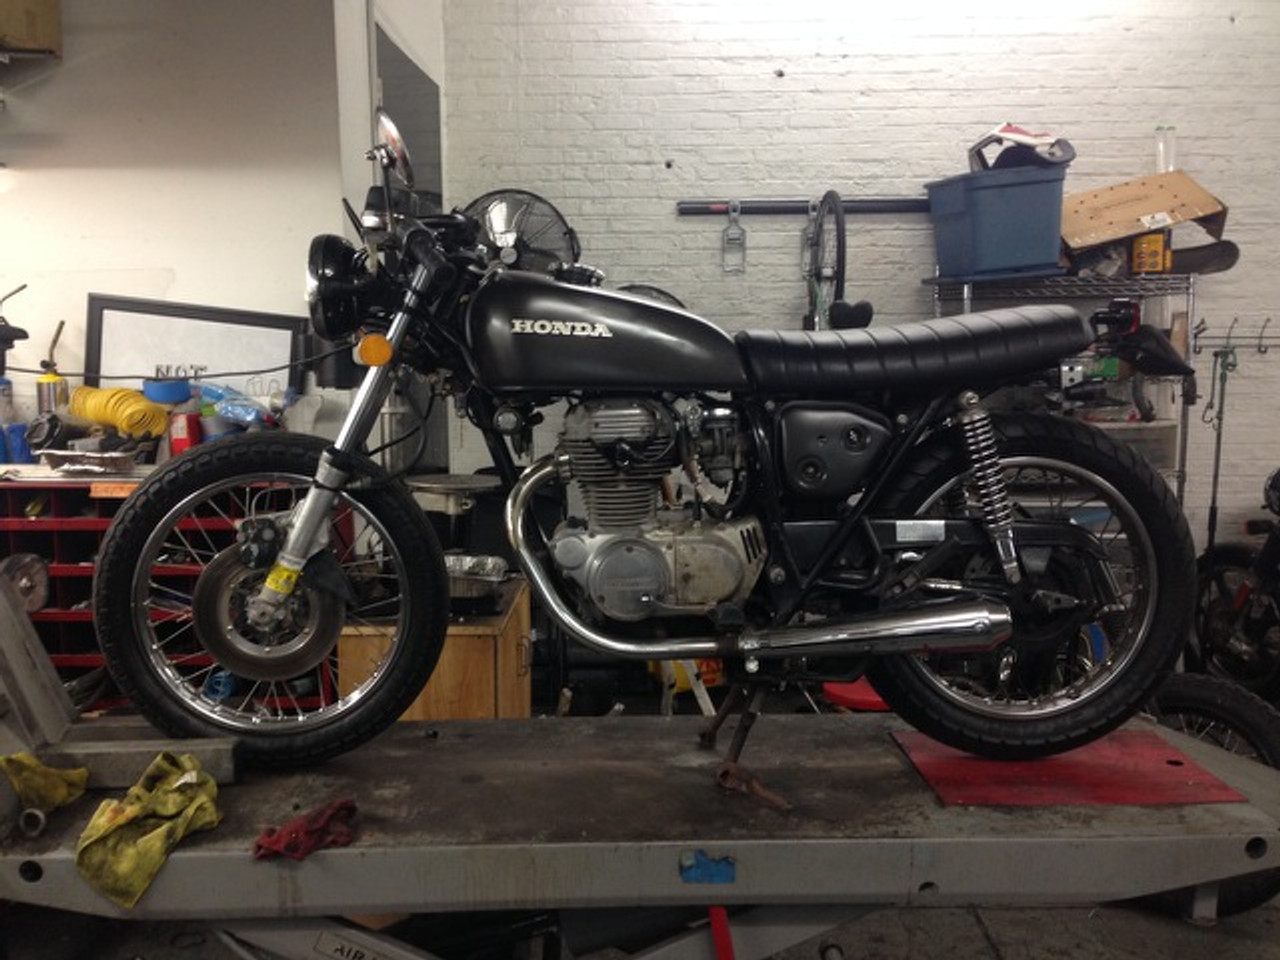 Honda CB360T CB360 Twin CB250 metal pan, work with original hinges no modification to the frame